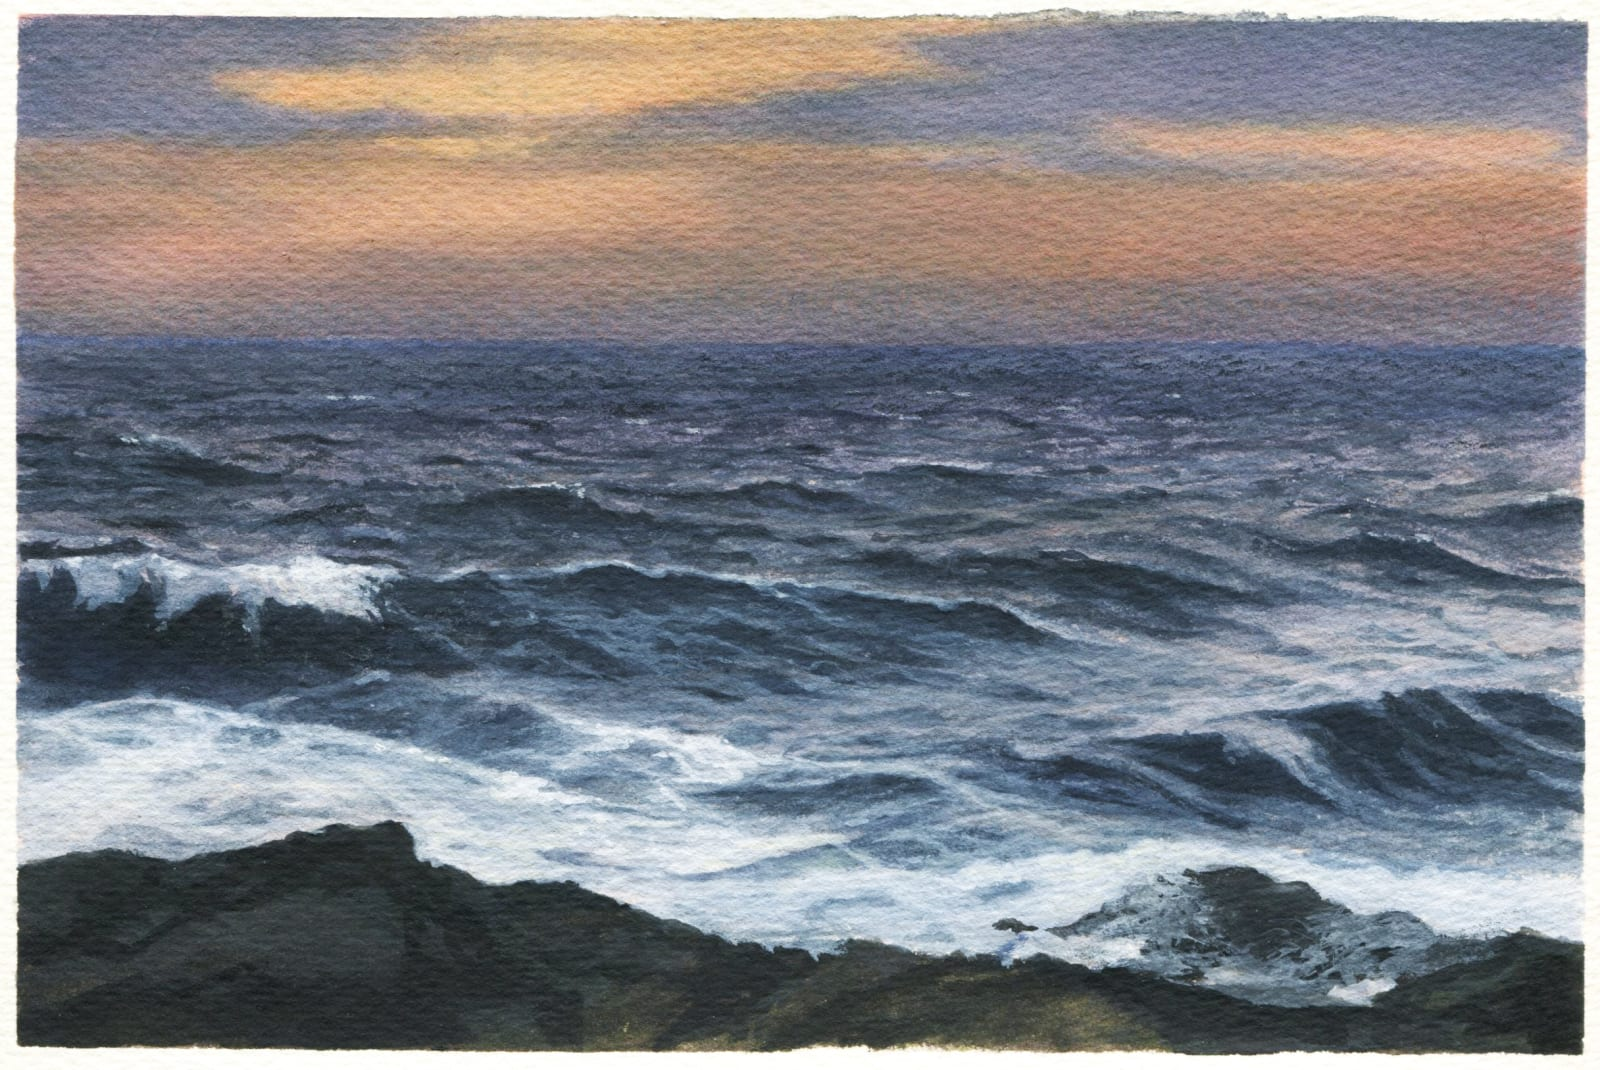 Dozier Bell, Western Cove, twilight, 2020, watercolor on paper, 5.5 x 8 in.